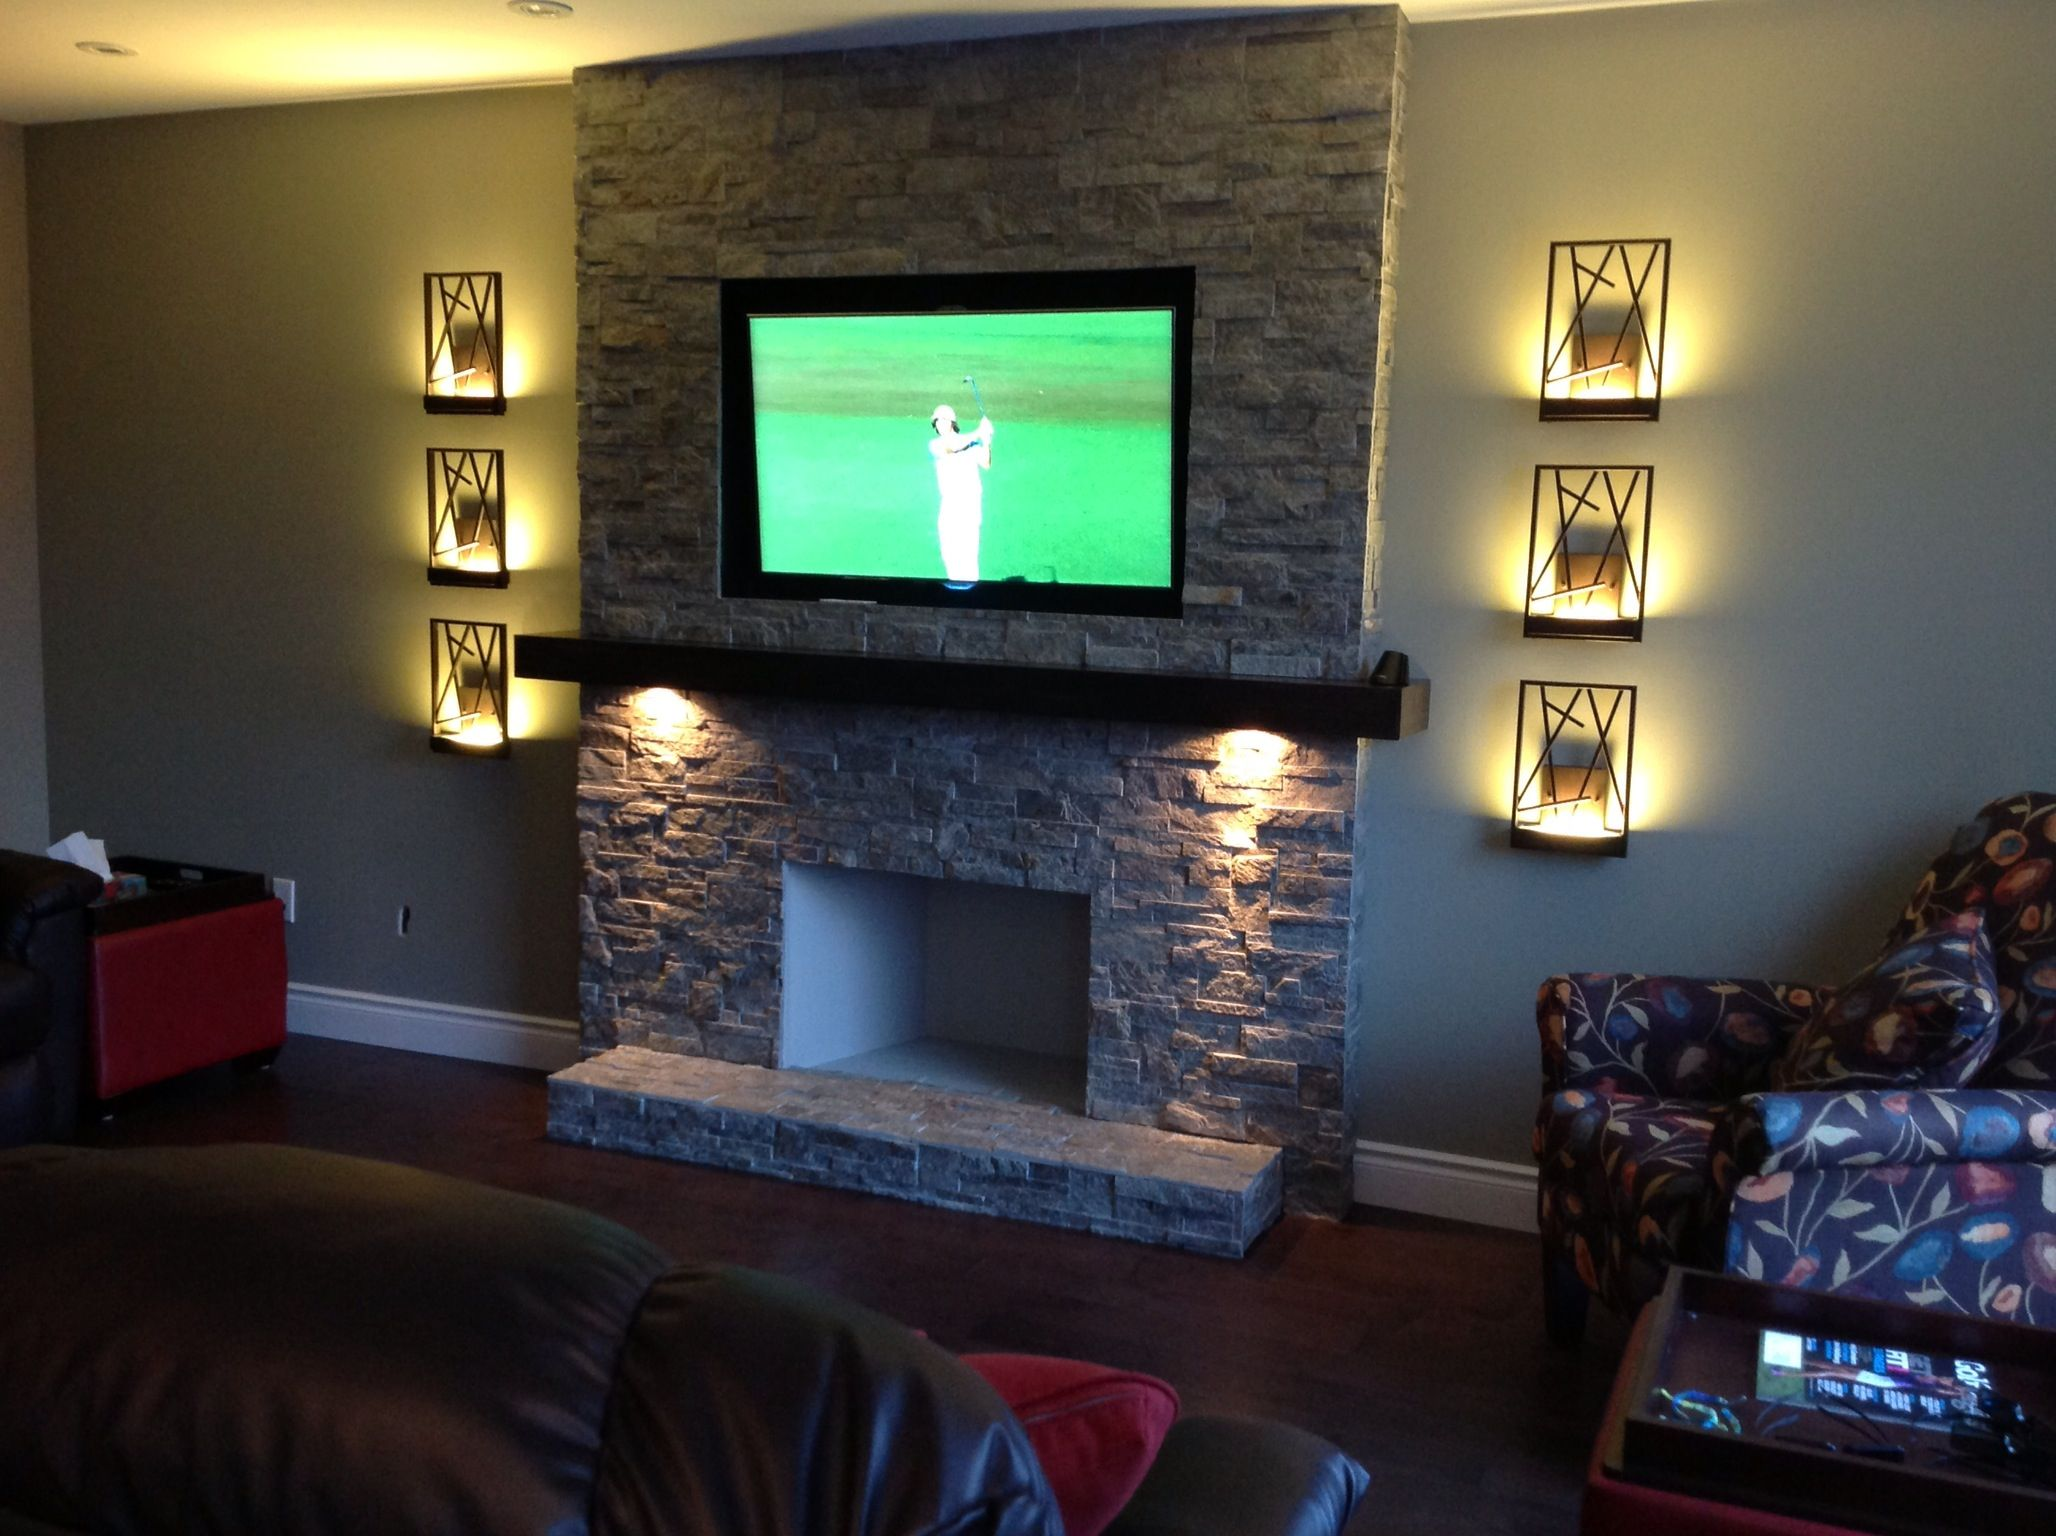 Tv above fireplace Recessed and painted black behind TV